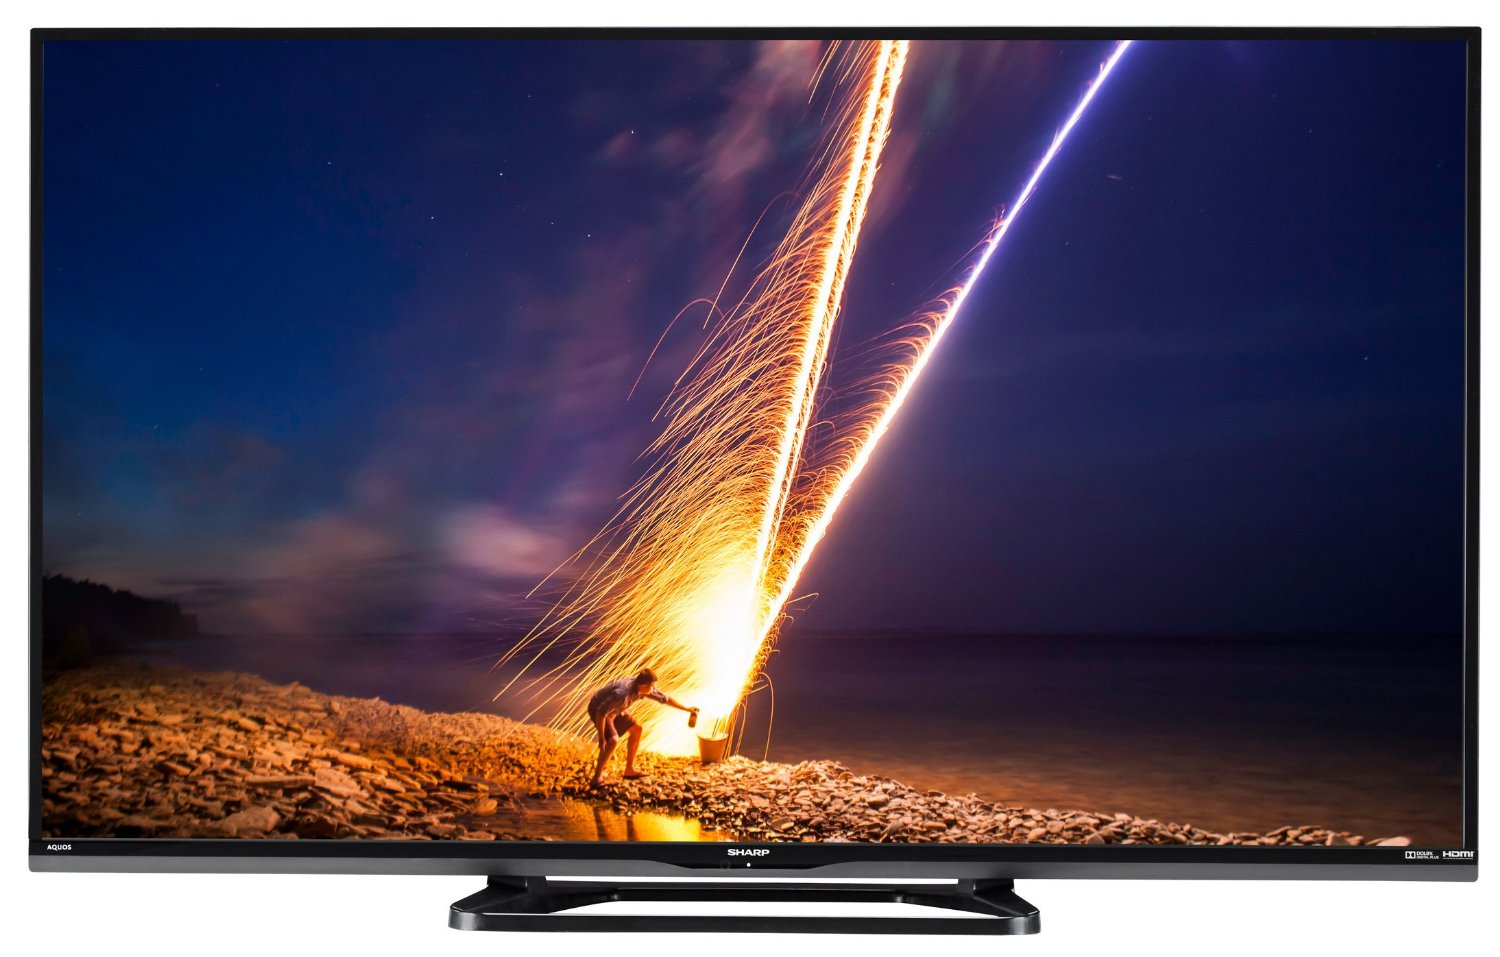 40 Inch Smart Tv Deals Cheap Tv 32 Inch Smart Find Tv 32 Inch Smart Deals On Line At